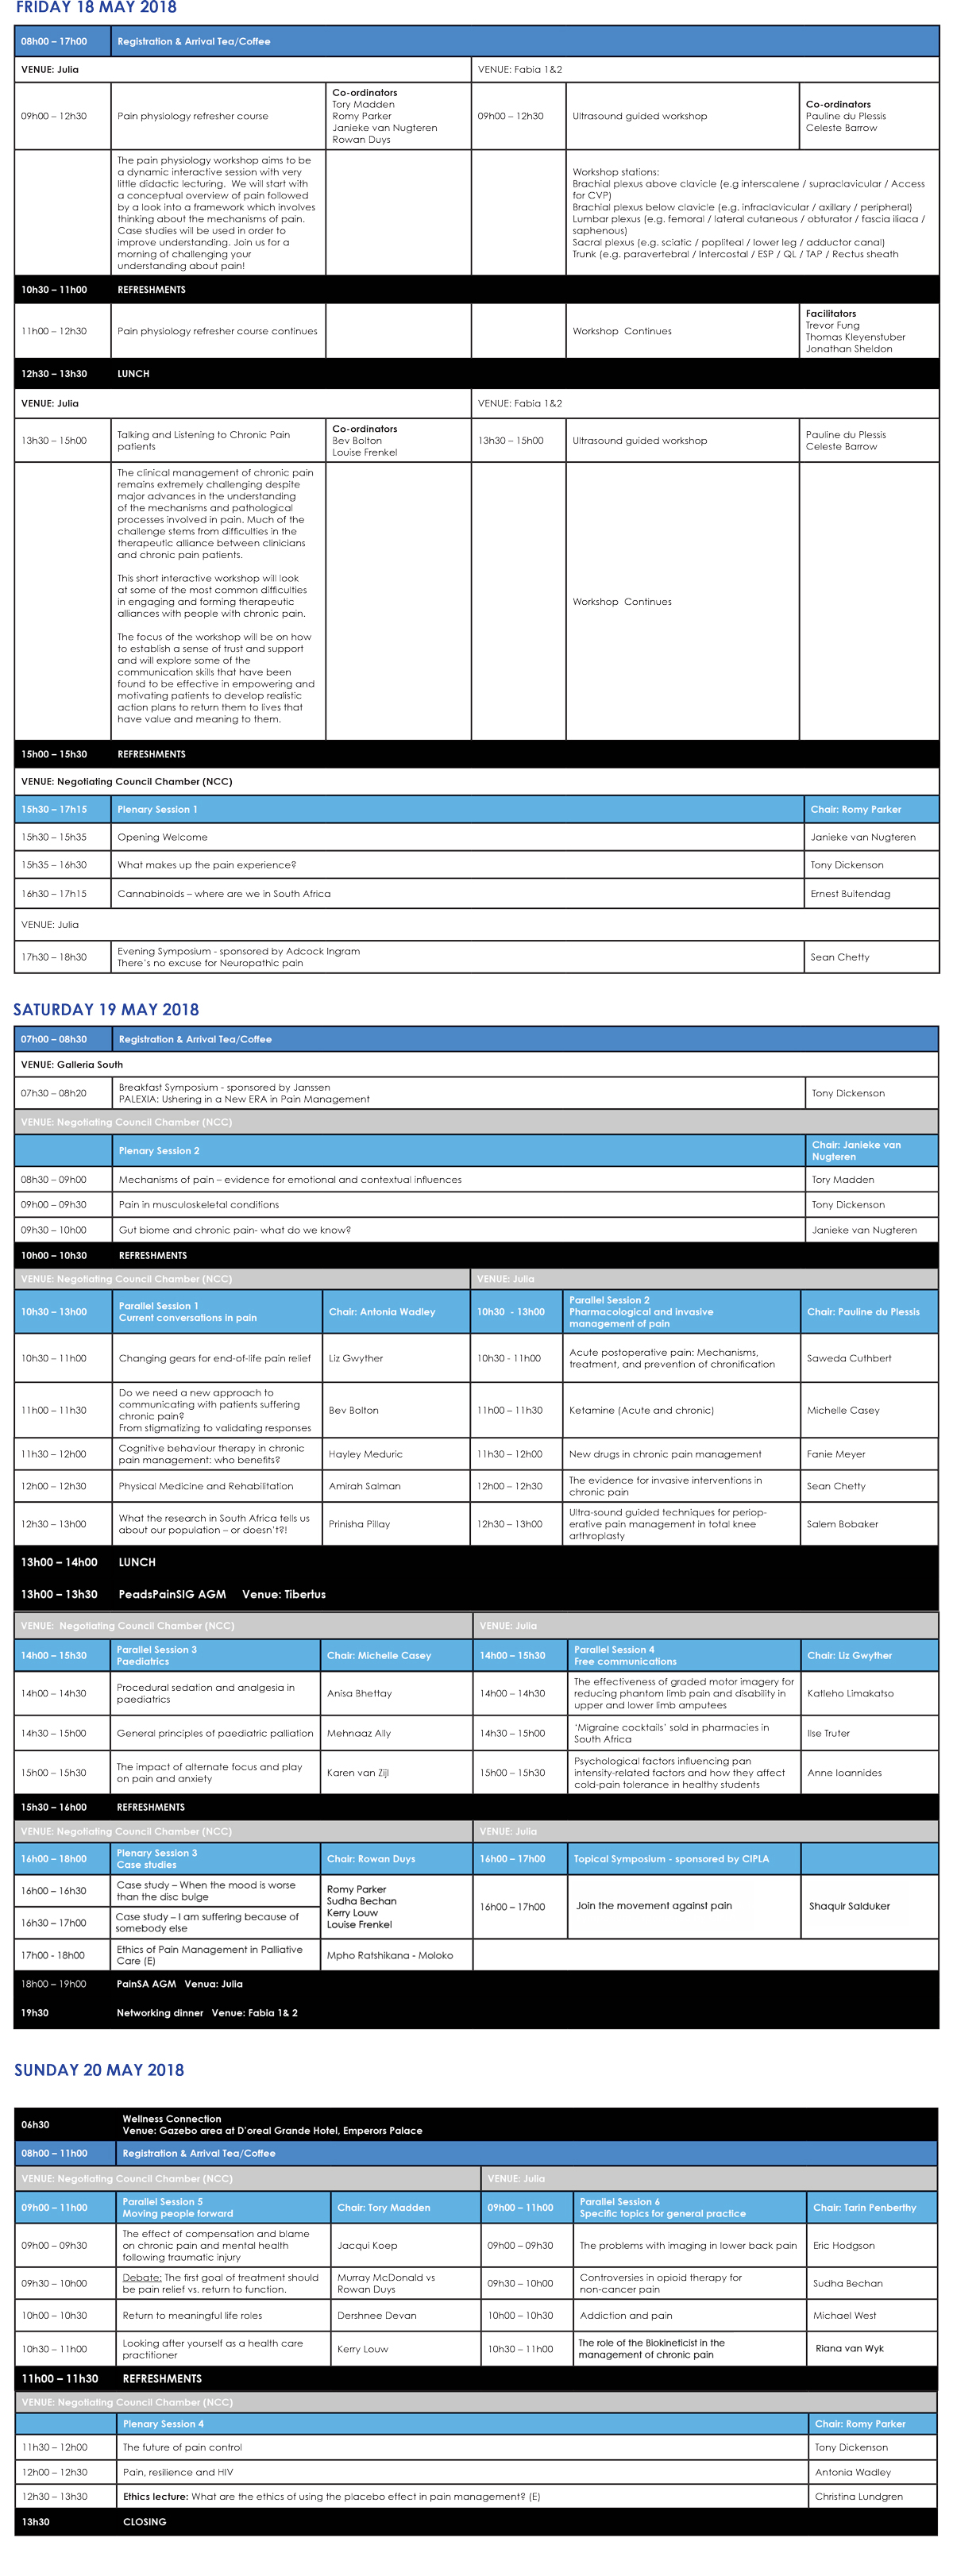 A4-2018-PAINSA-congress-programme.indd